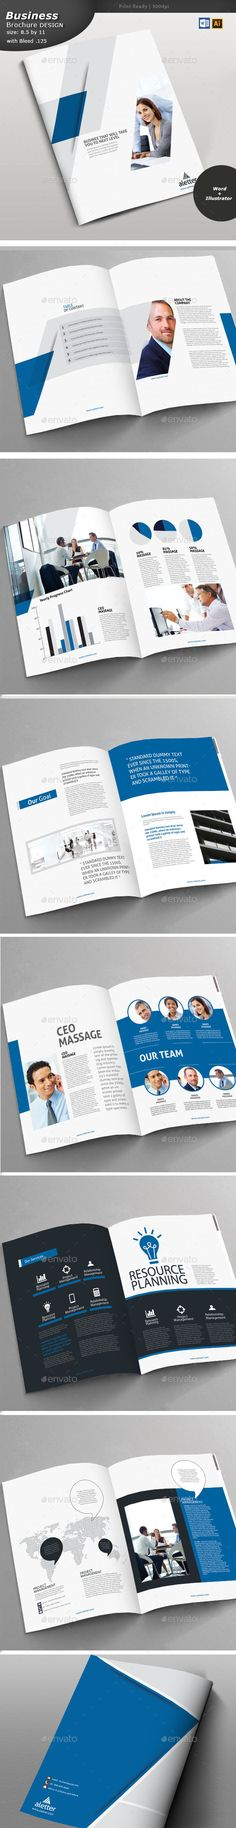 #Business #Brochure - Brochures Print #Templates Download here: https://graphicriver.net/item/business-brochure/19038874?ref=alena994